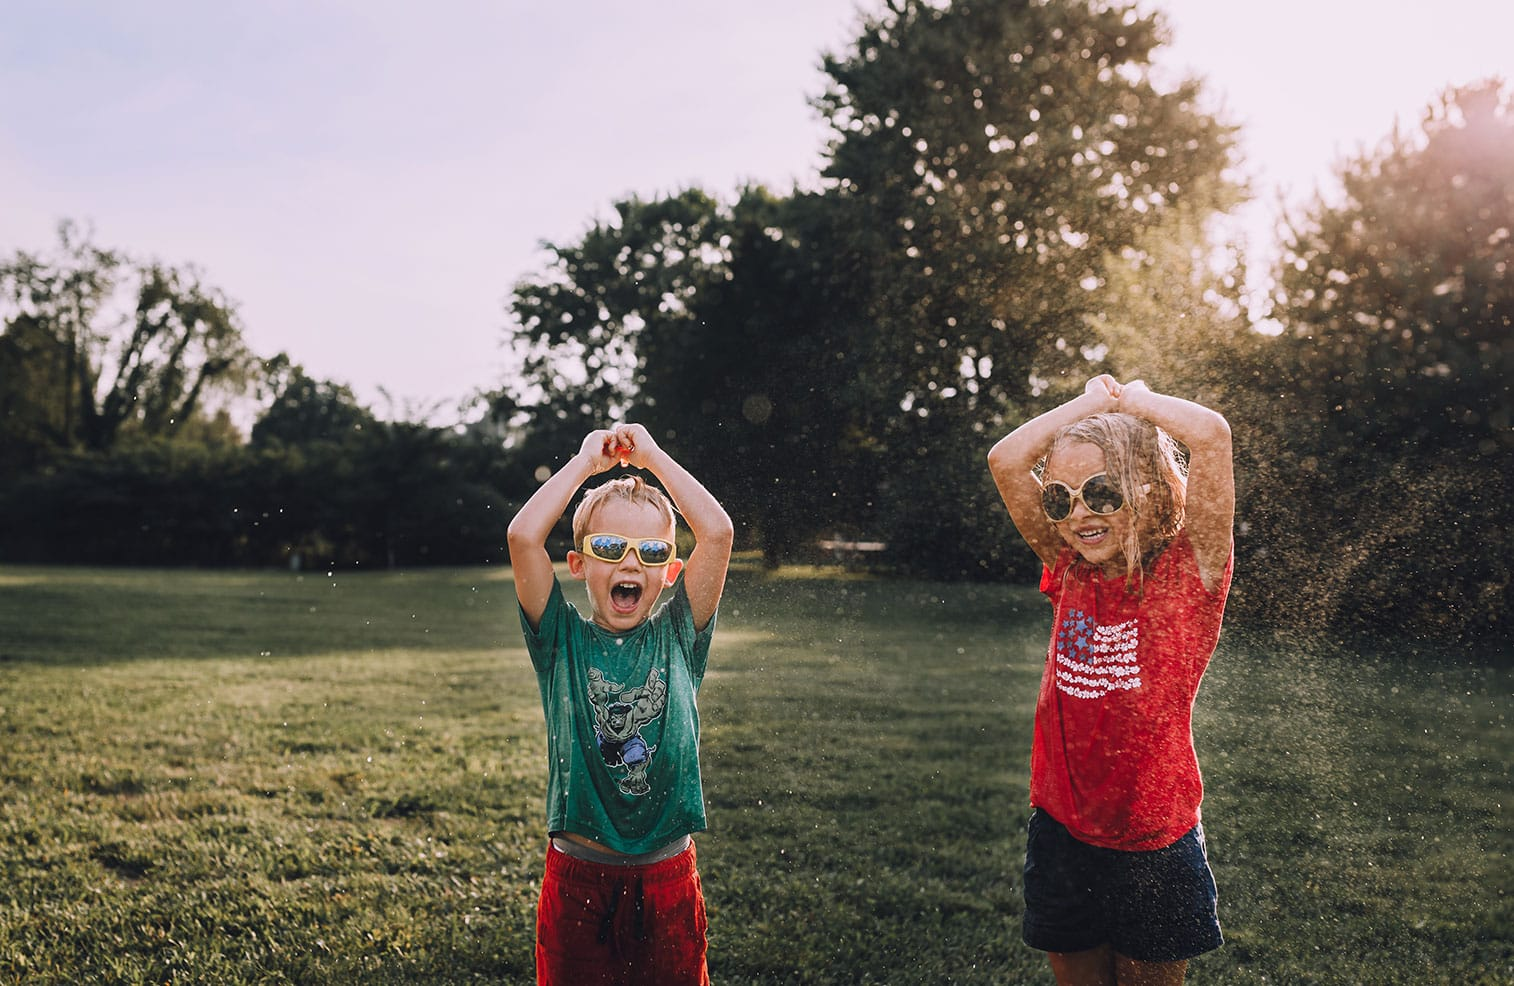 The summer break can bring all kinds of parenting challenges. Here's a few ideas for how you can survive summer with energetic kids, and have a fun time too